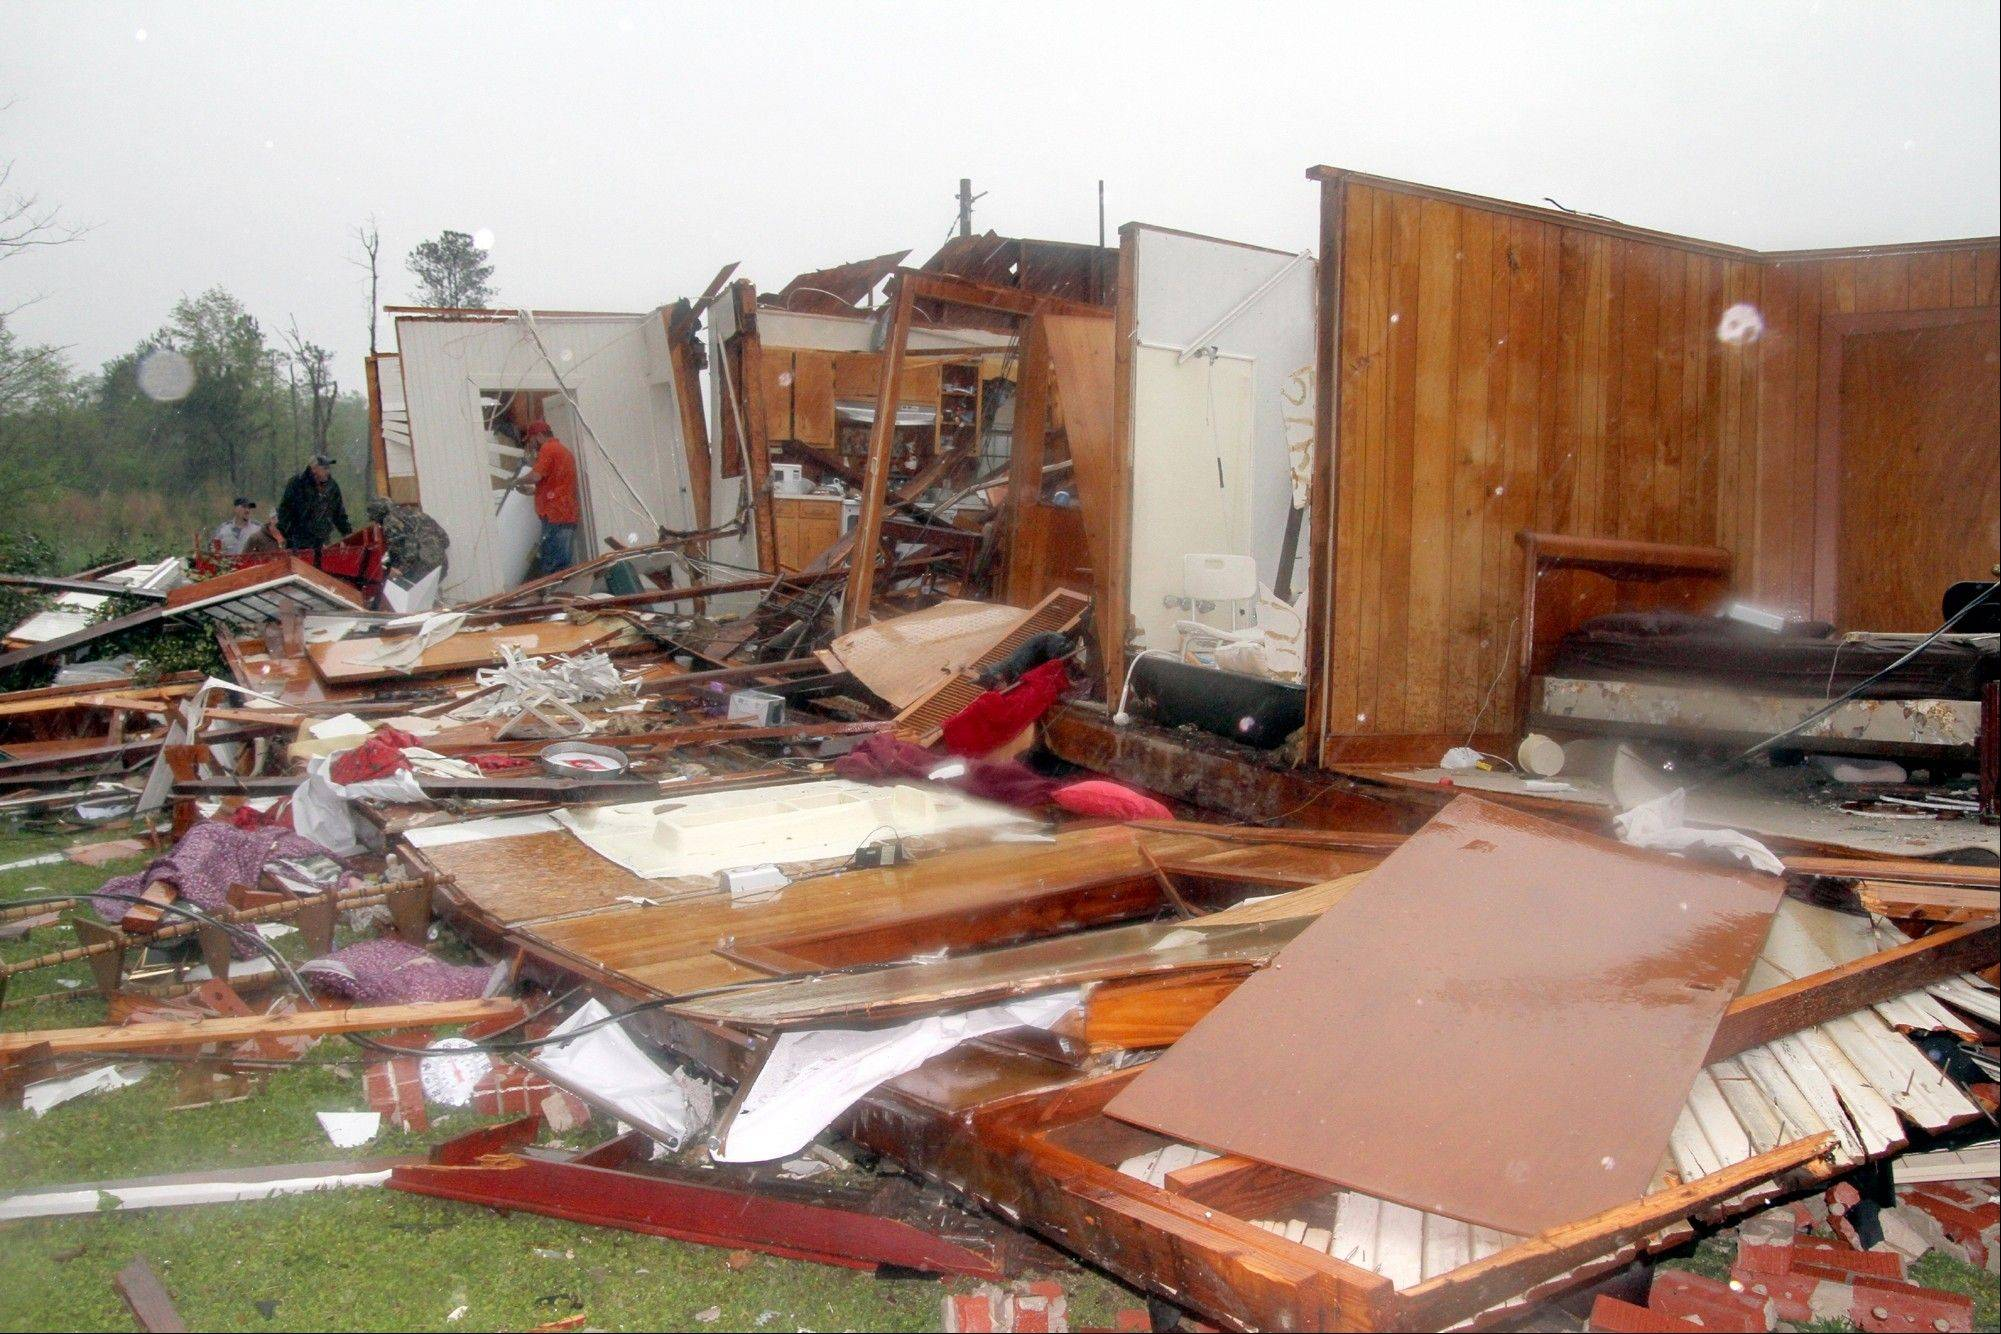 Family members and friends search through Ralph Sciple's home on Highway 397 in Kemper County, Miss., after a tornado ripped through the area Thursday, April 11, 2013. The Sciples were taken to a hospital with minor injuries.